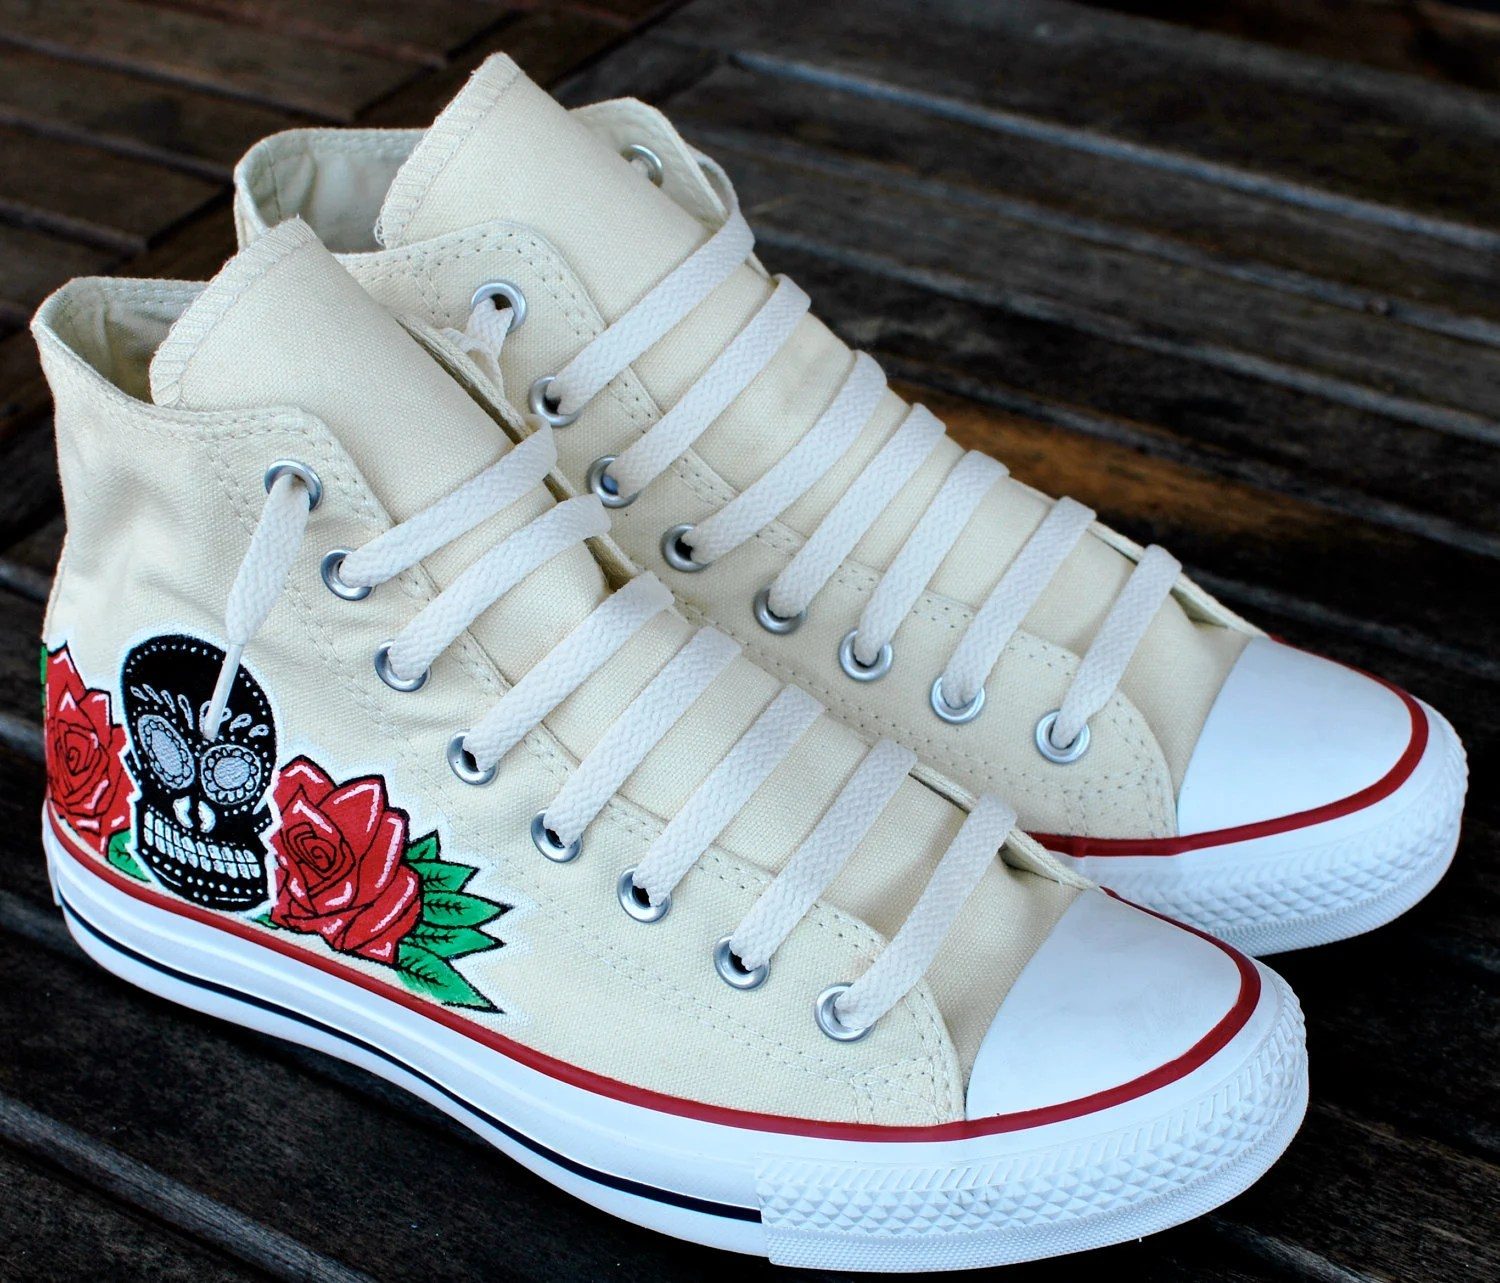 Items similar to Dia De Los Muertos Skull and Roses BKLYN graffiti custom hi top Chuck Taylor